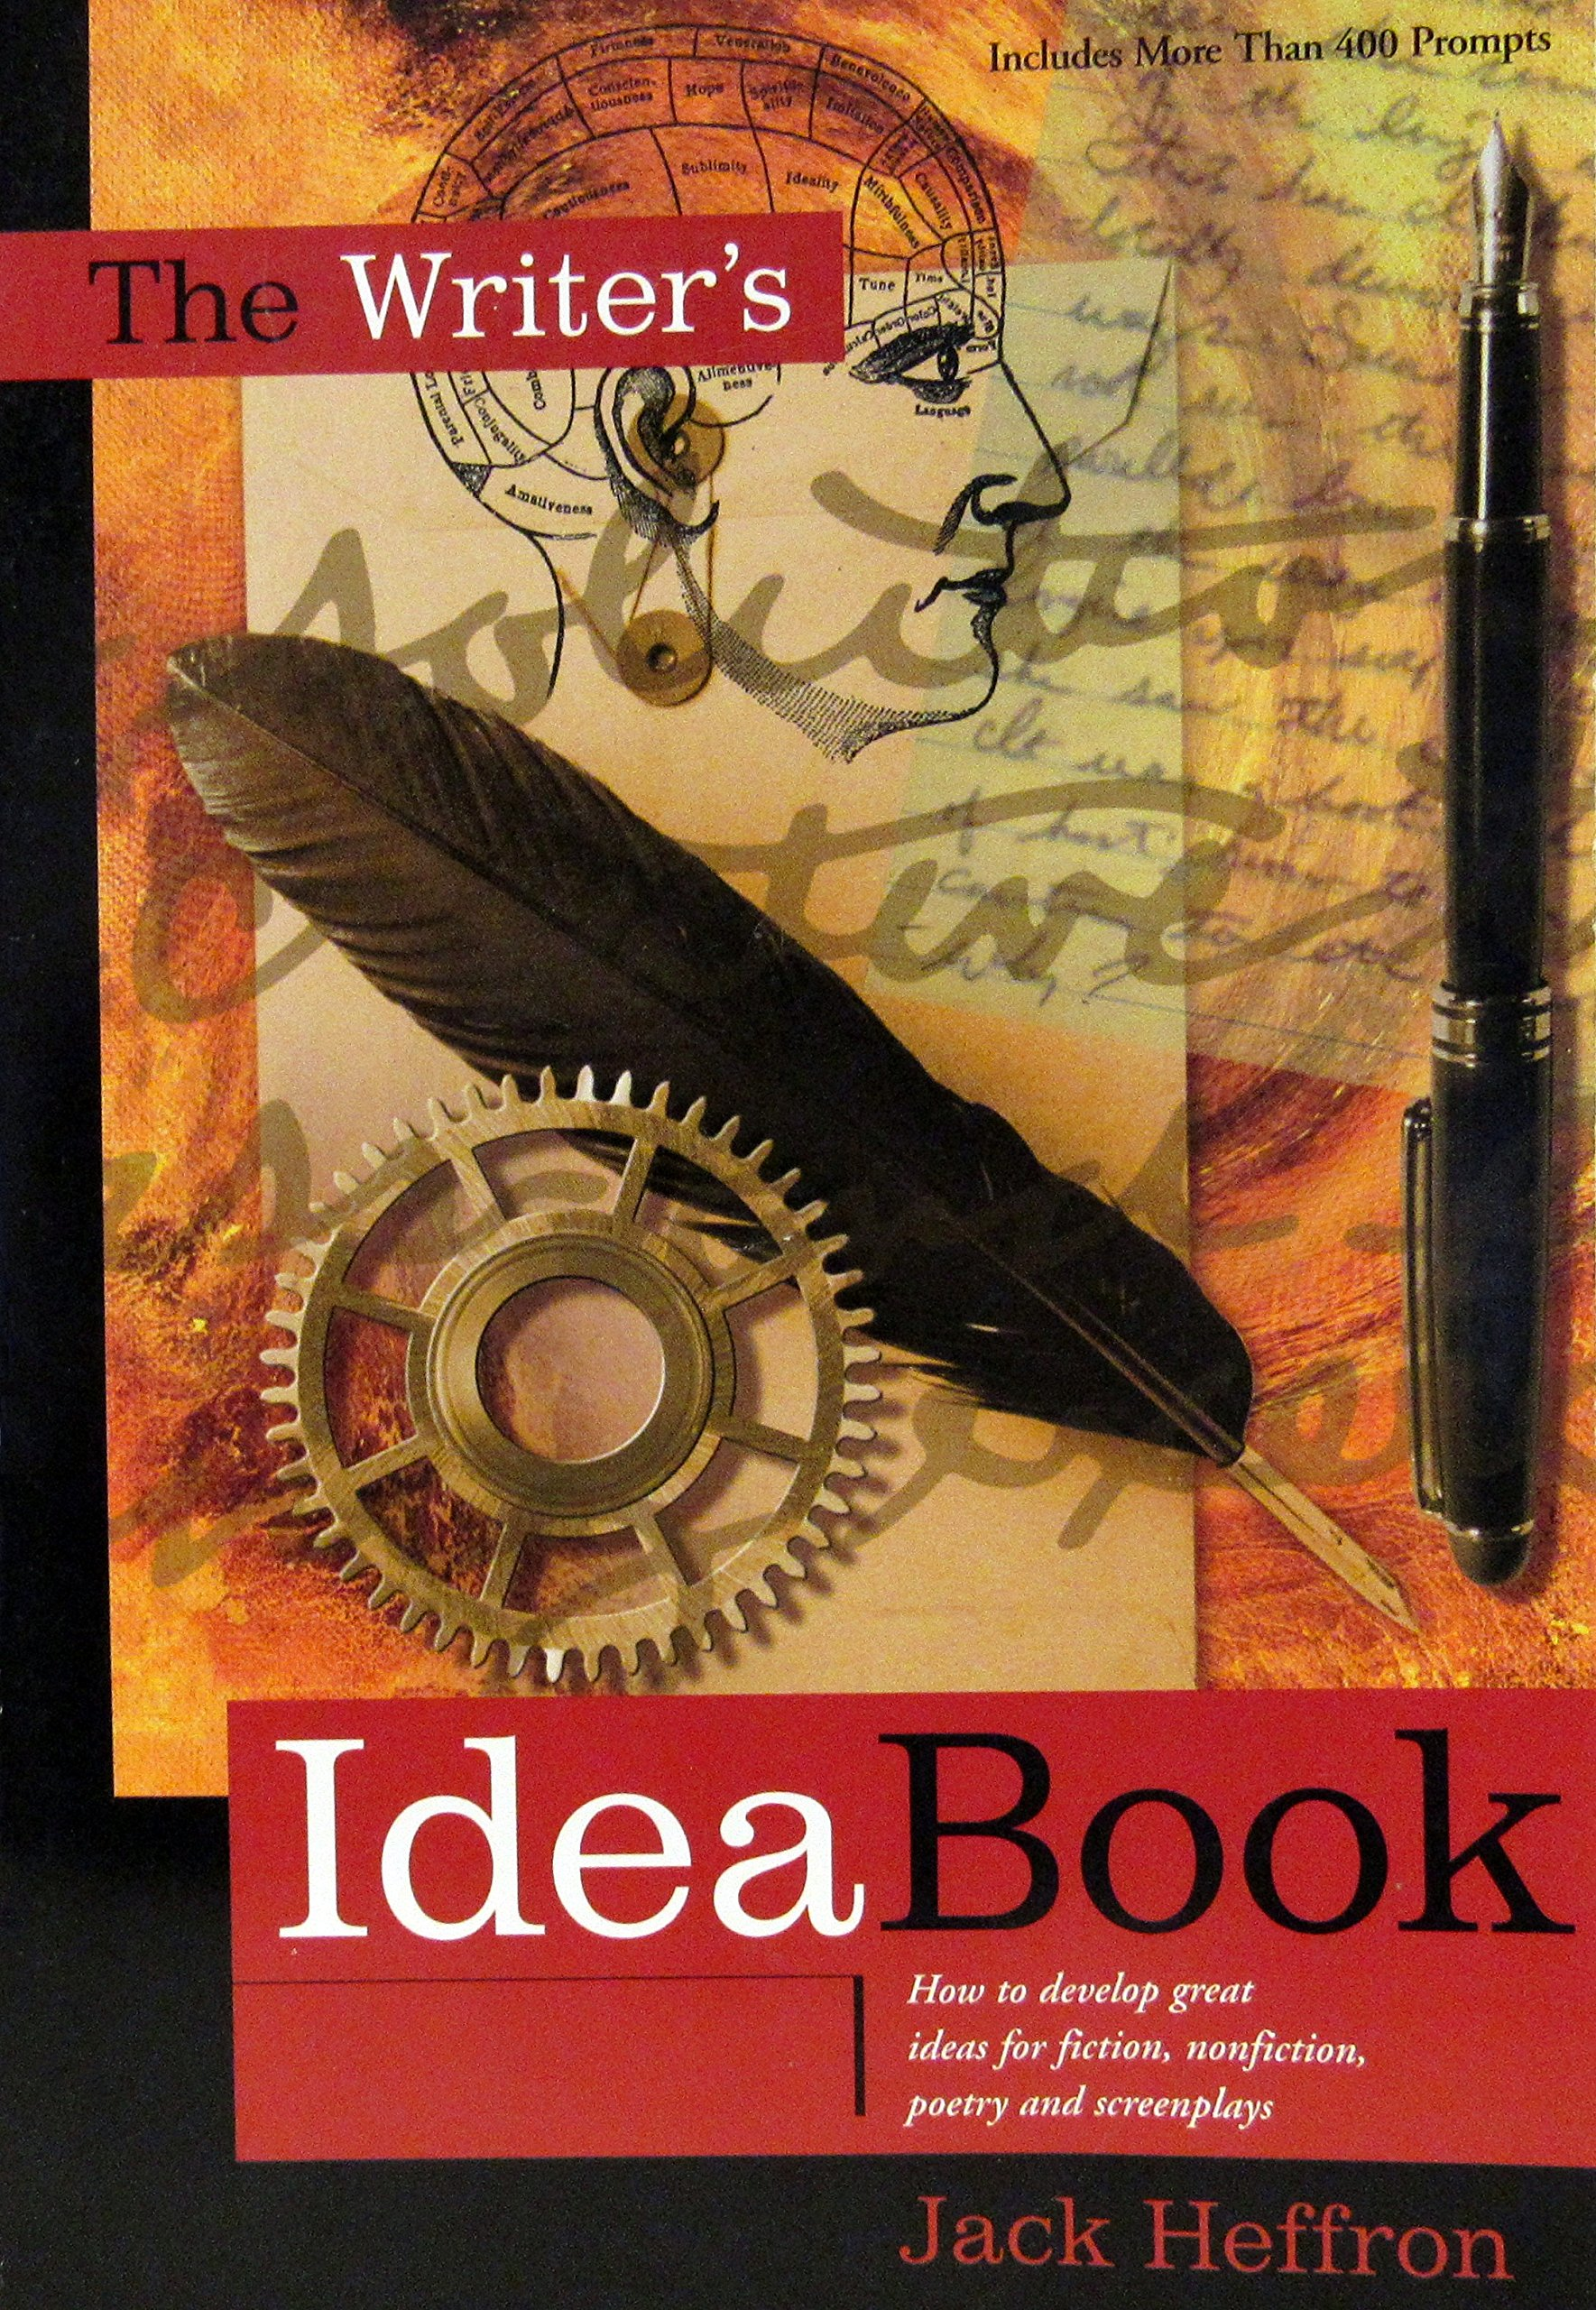 Download The Writer's Idea Book: How to Develop Great Ideas for Fiction, Nonfiction, Poetry and Screenplays ebook